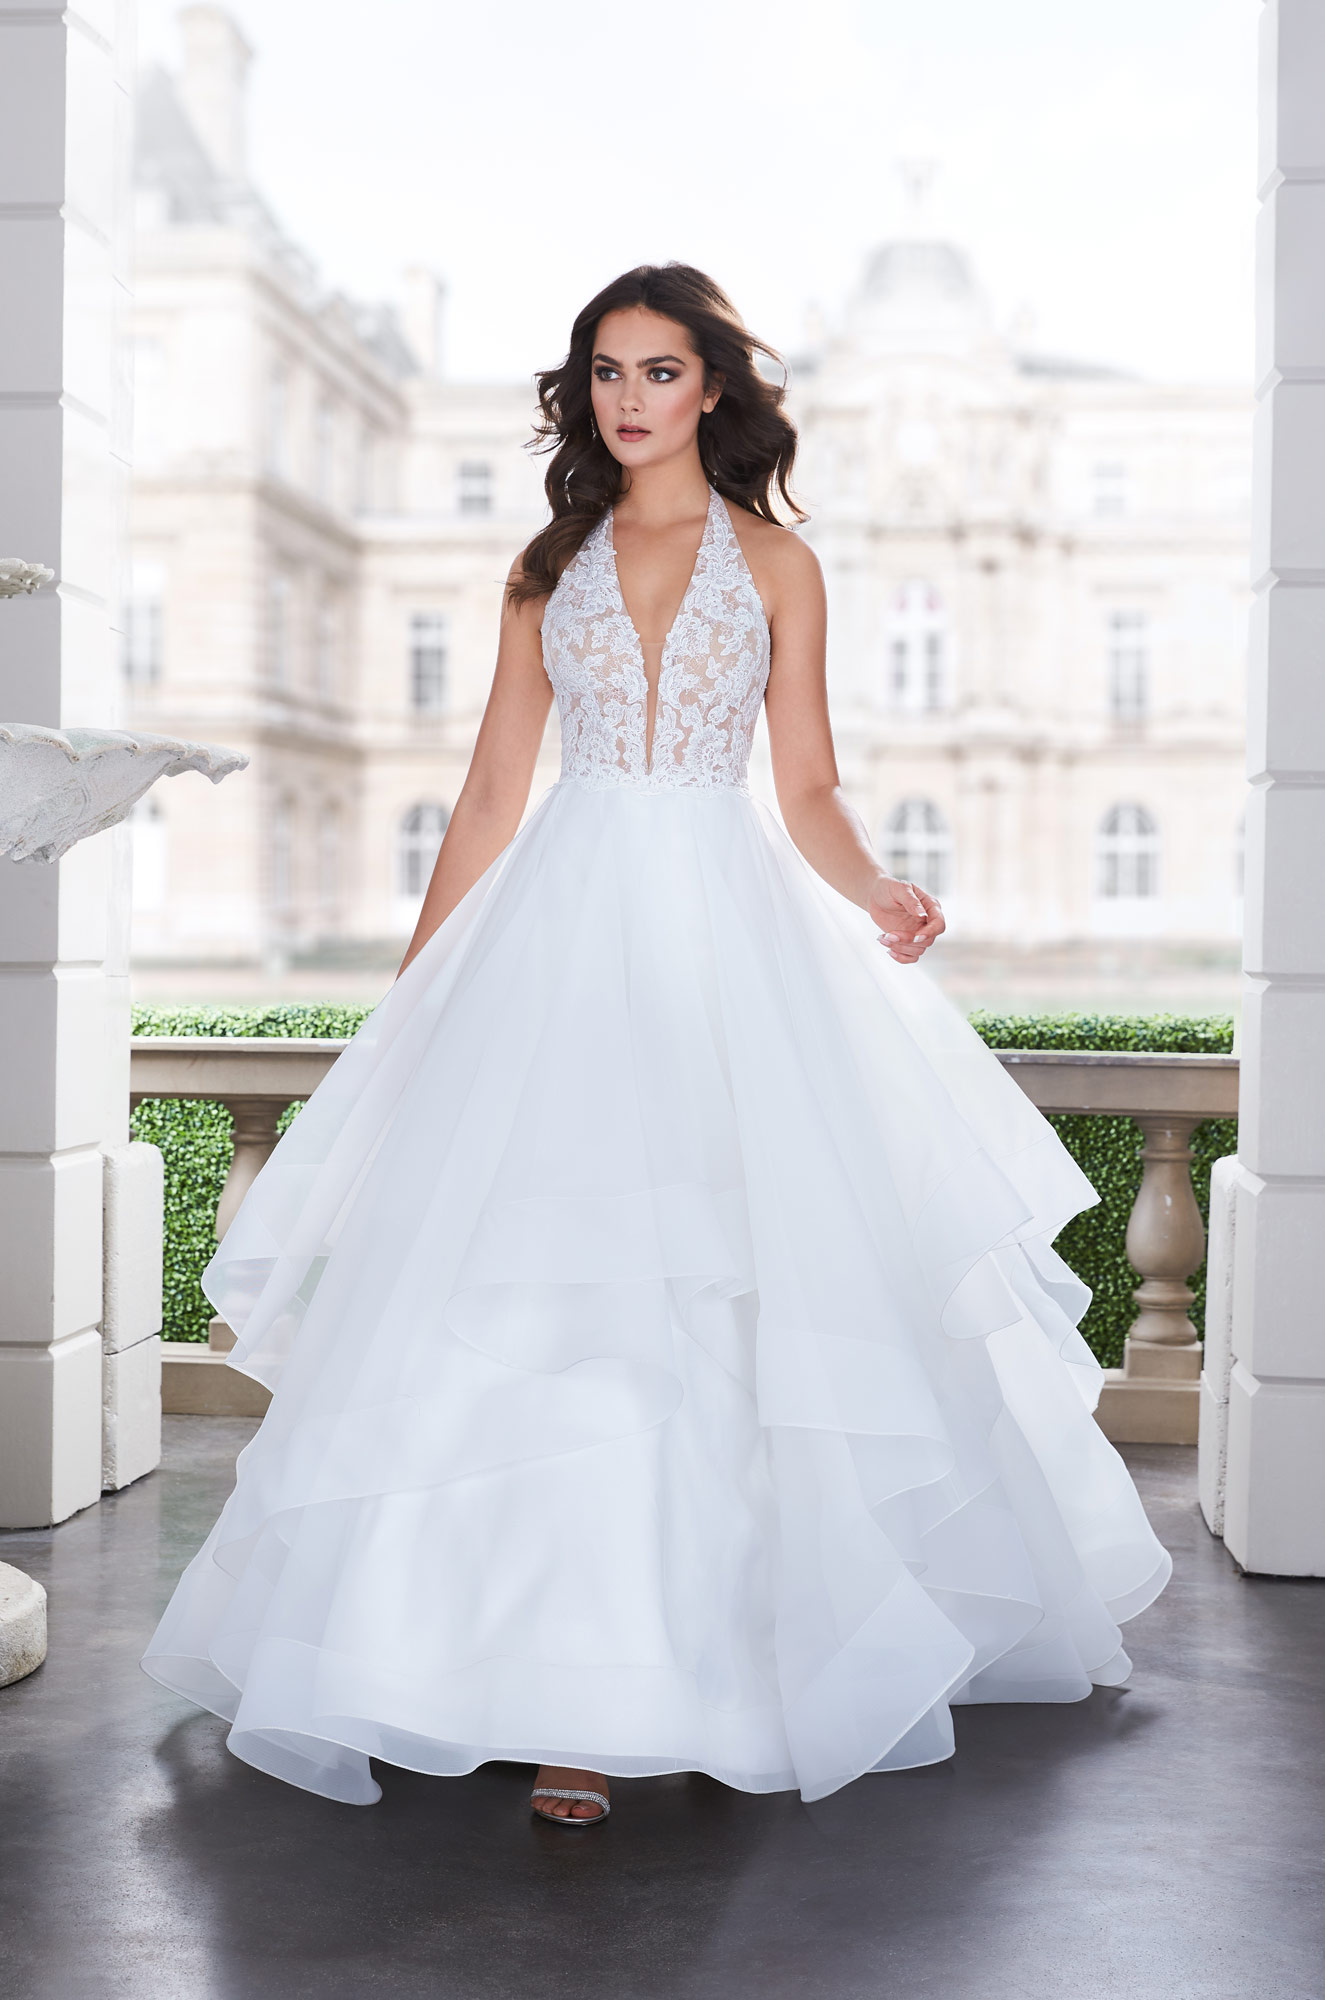 Lavish Ball Gown Wedding Dress – Style #4855 | Paloma Blanca